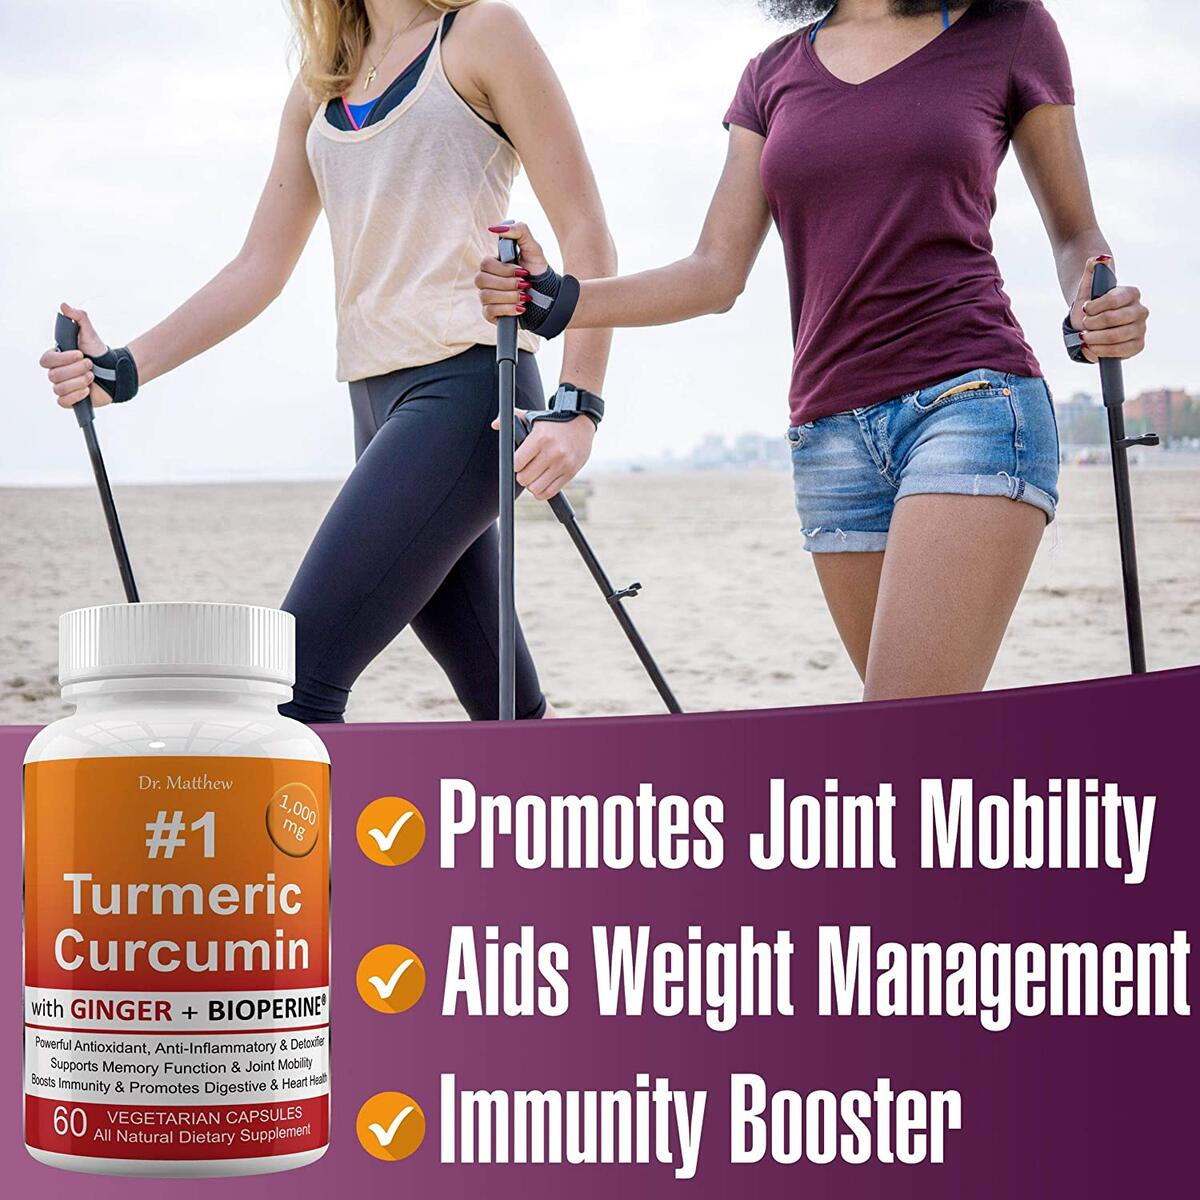 Best Turmeric Curcumin with BioPerine Black Pepper and Ginger. 15X High Potency with 95% Curcuminoids. Anti-inflammatory, Joint Support, Anti Aging, Antioxidant Powder